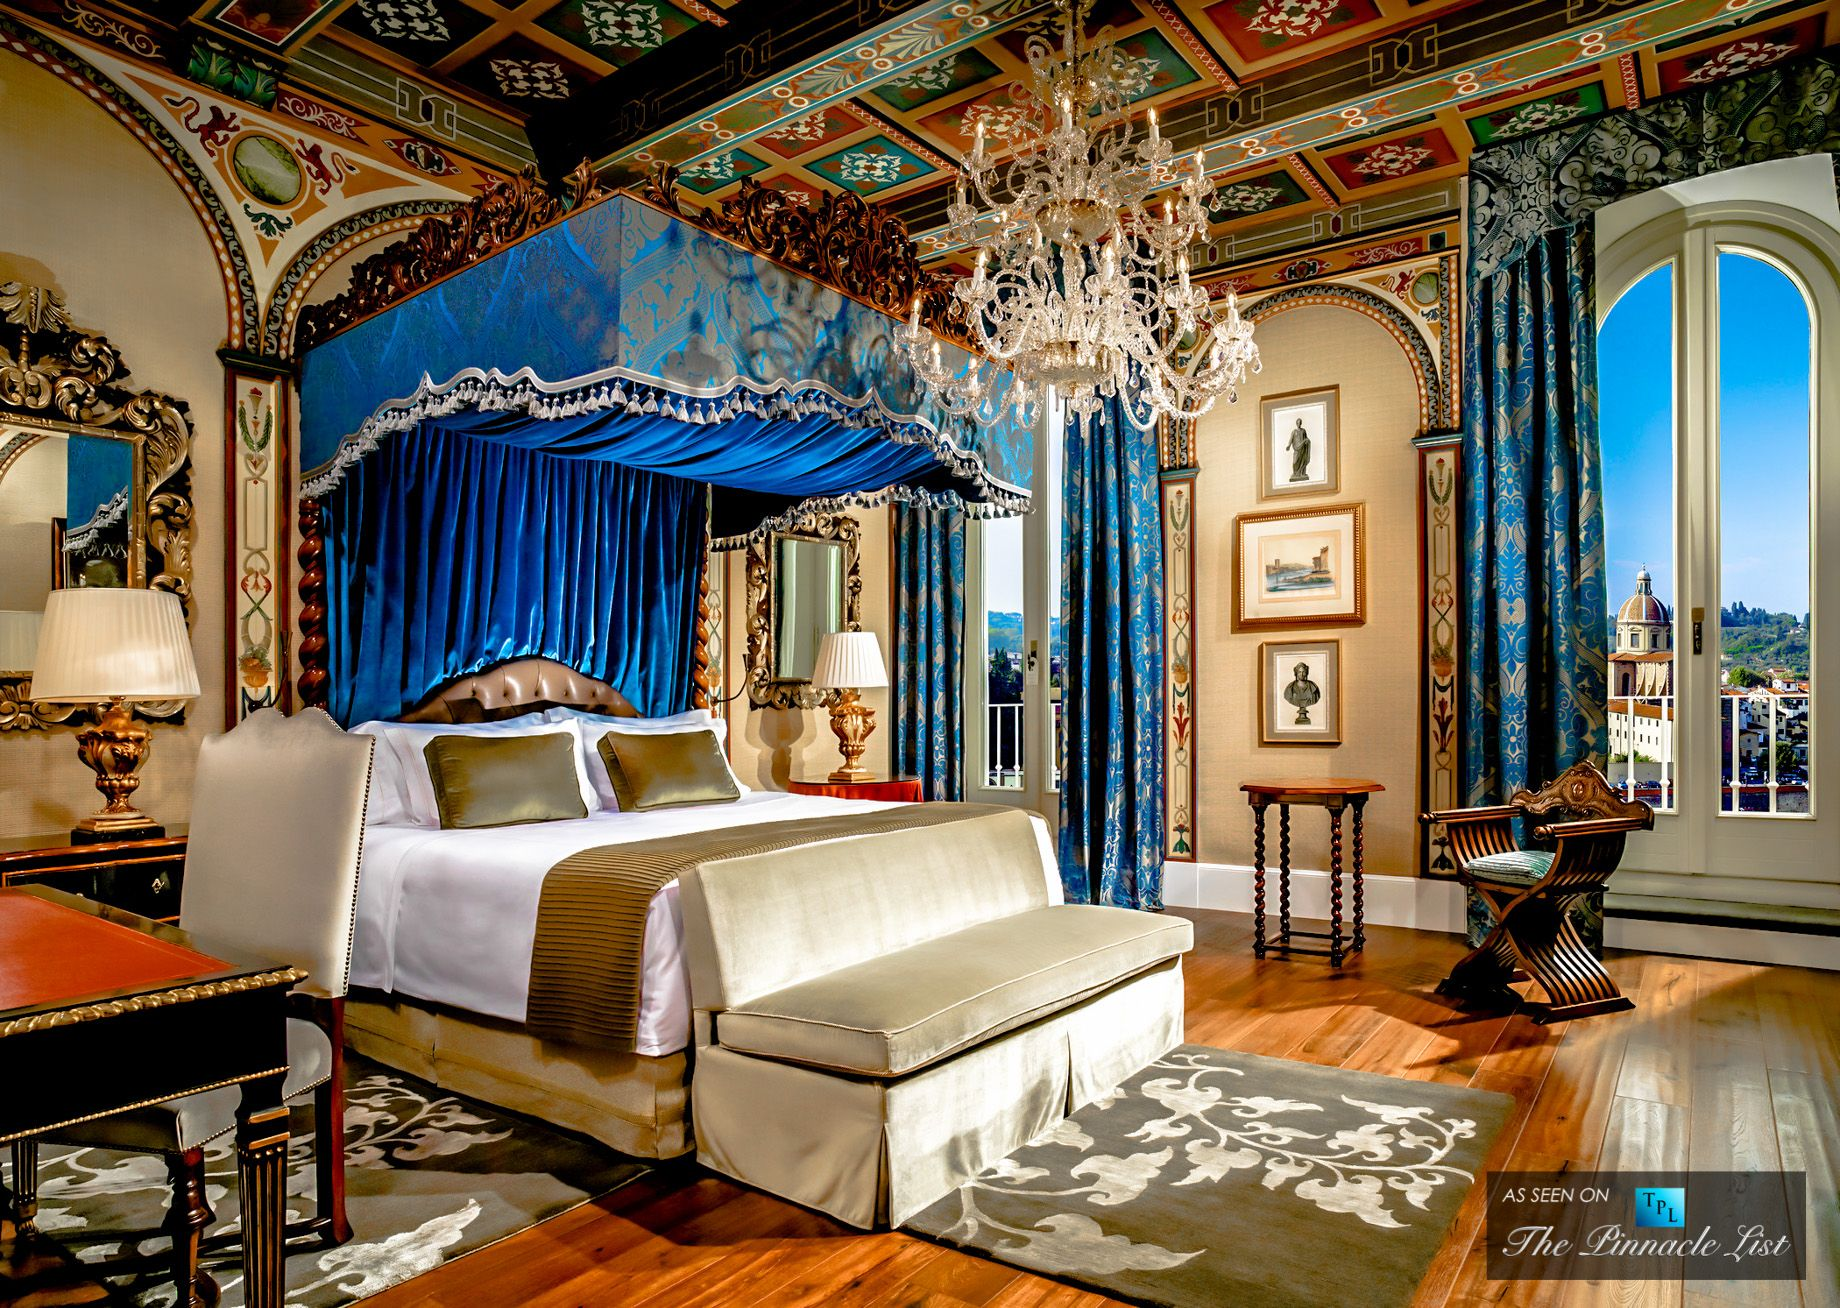 St regis luxury hotel florence italy royal suite for Hotel design italie